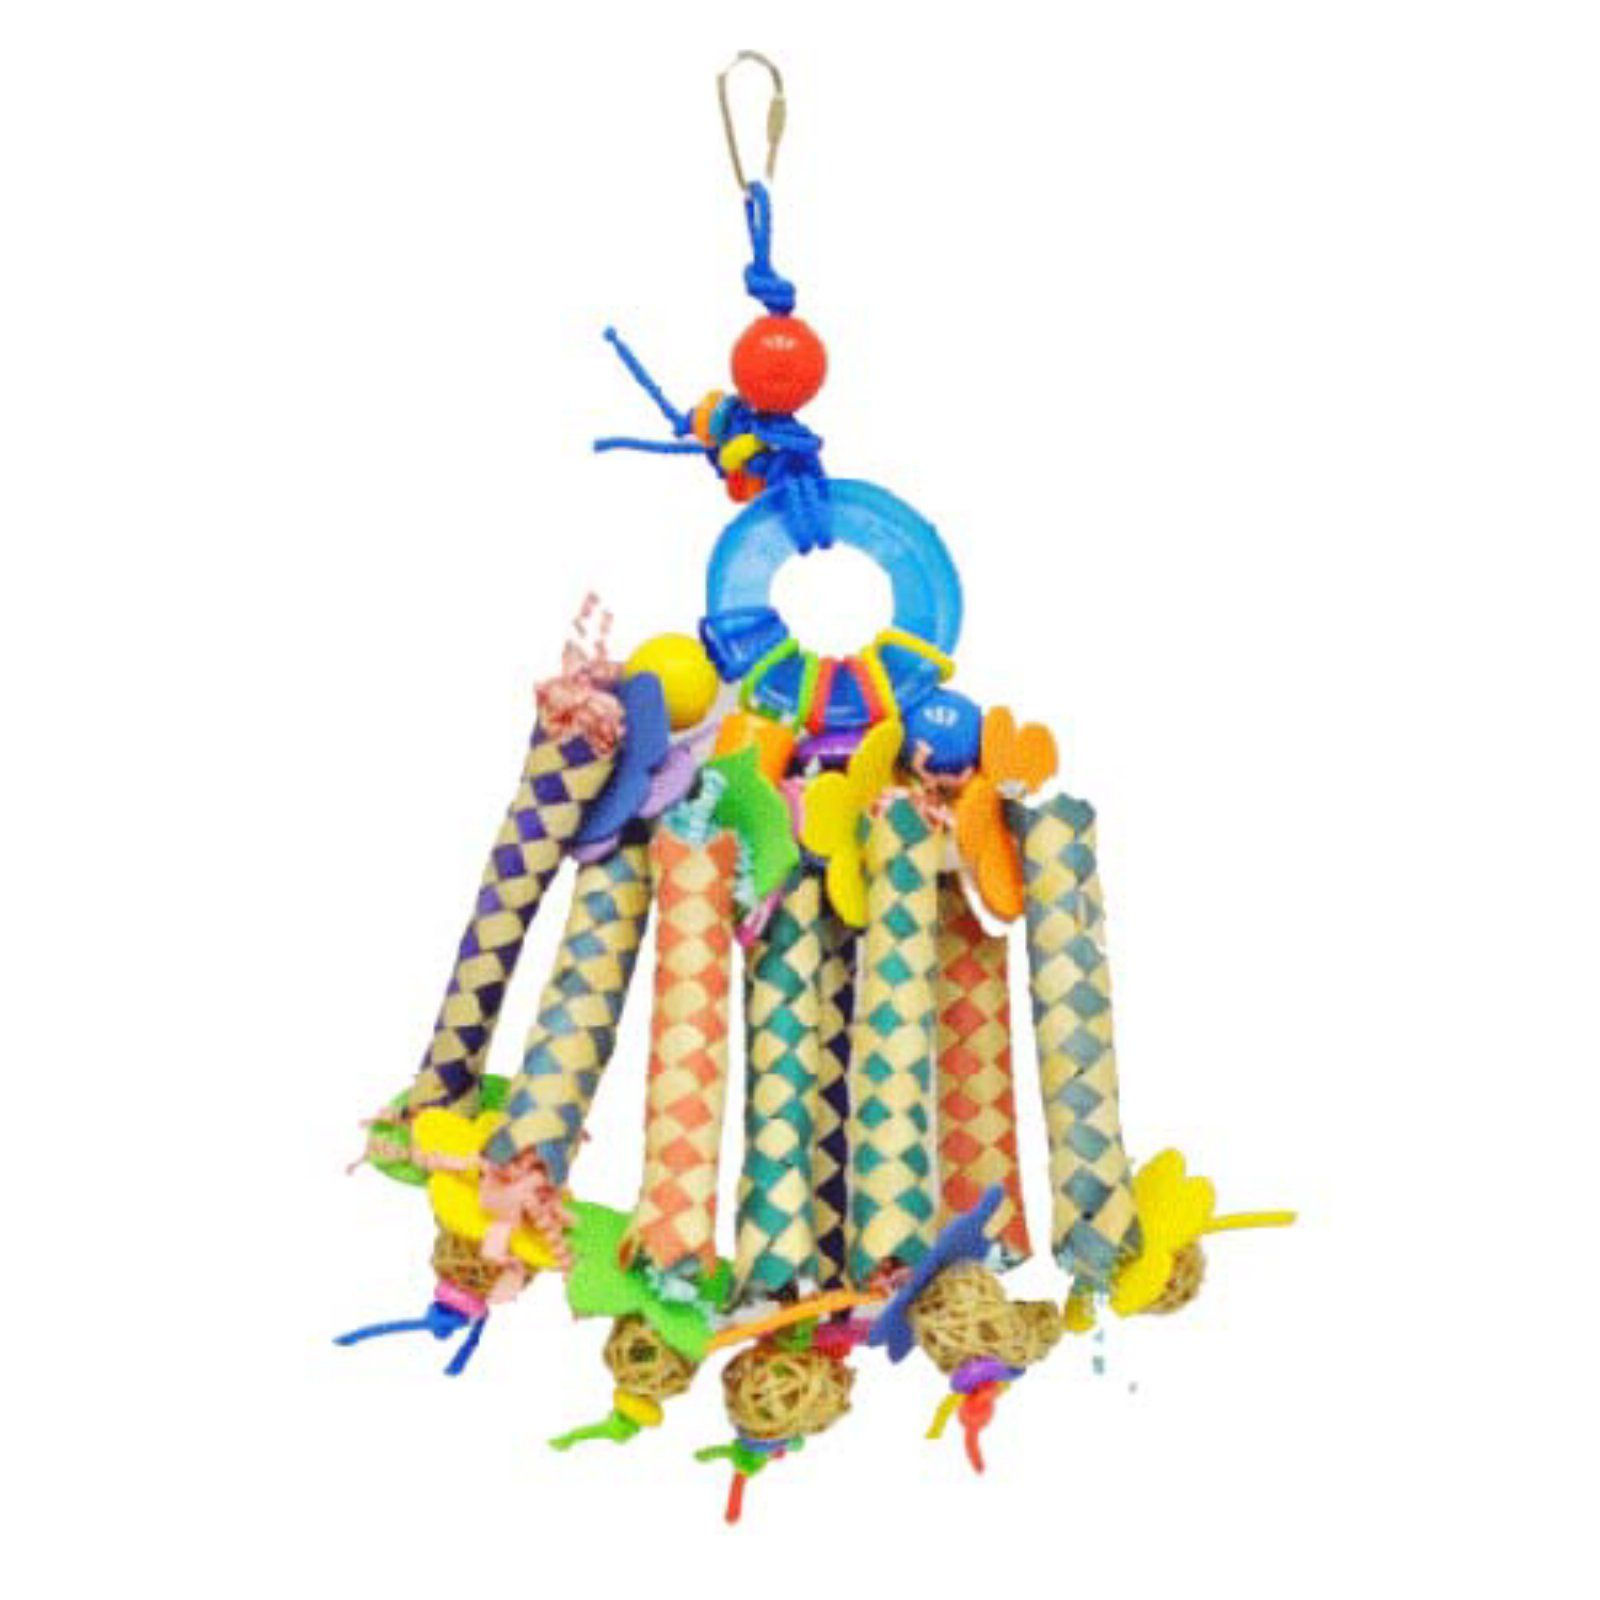 A And E Cage Co. Chinese Finger Trap Bird Toy In 2019